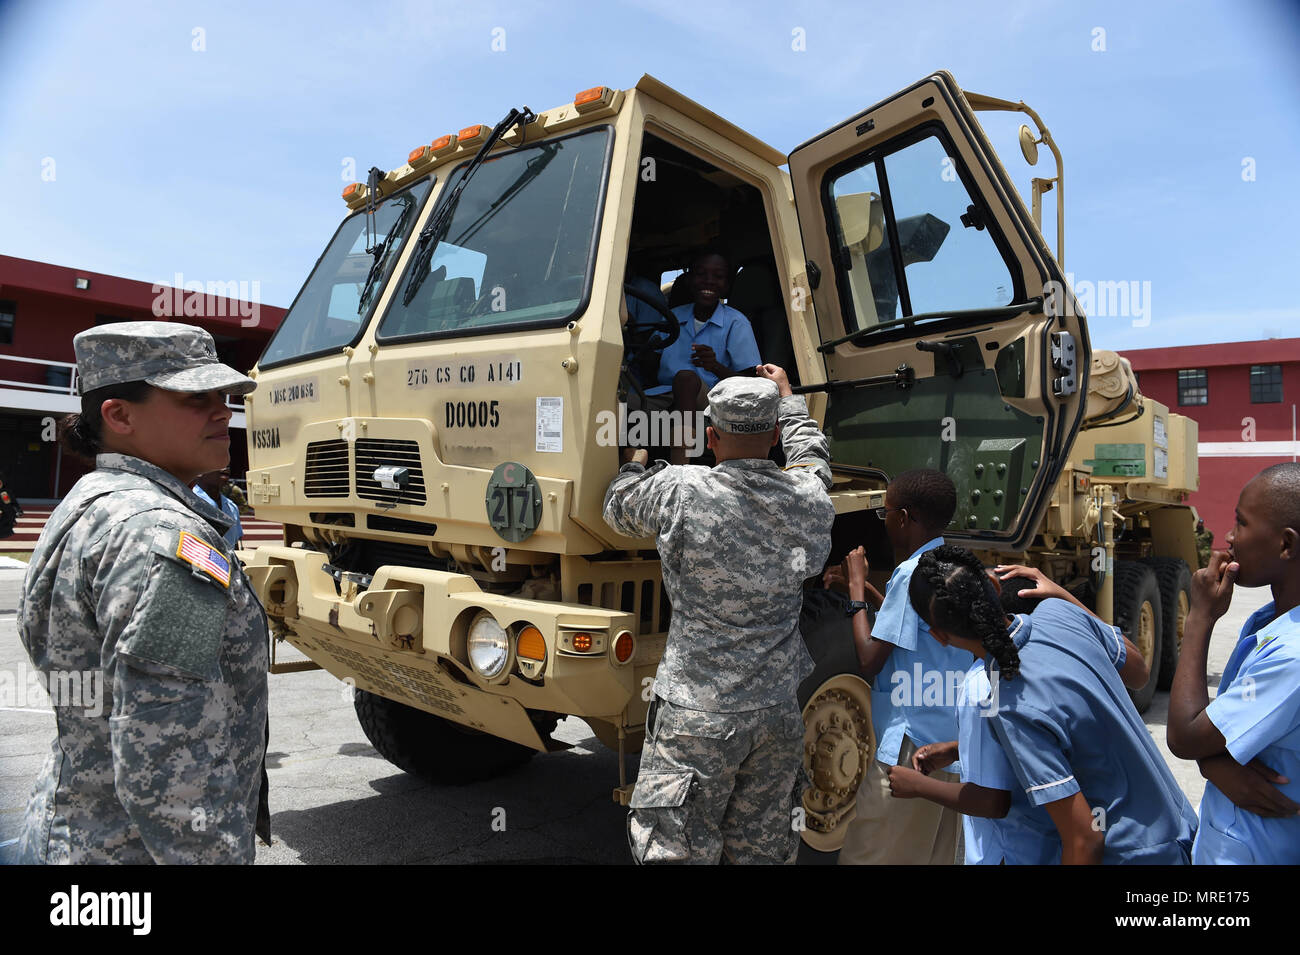 Bulletin Board Service Motorized Grain Mill Wiring Question Help Trk Stock Photos Images Alamy 170607 N Rg360 0148 United States Army Reserve Sgt Jarelys Santana